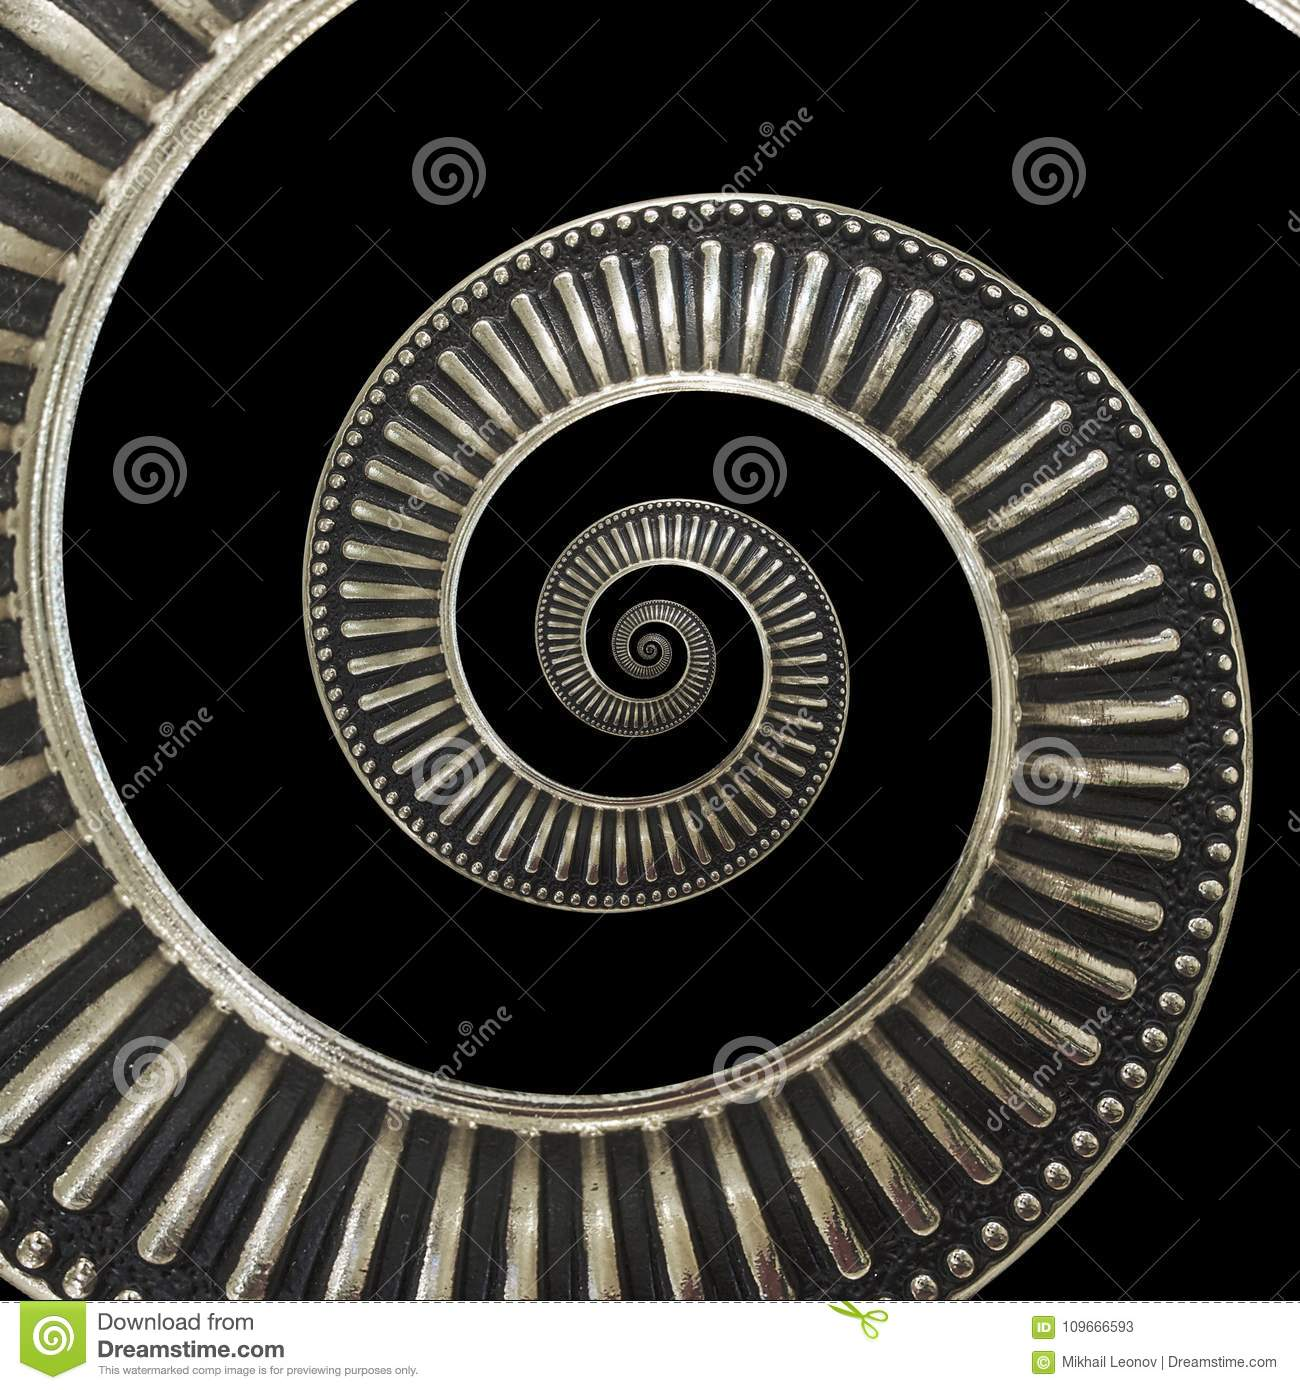 Isolated on black metal abstract spiral background pattern fractal. Metallic background, repetitive pattern. Metal spiral decorati